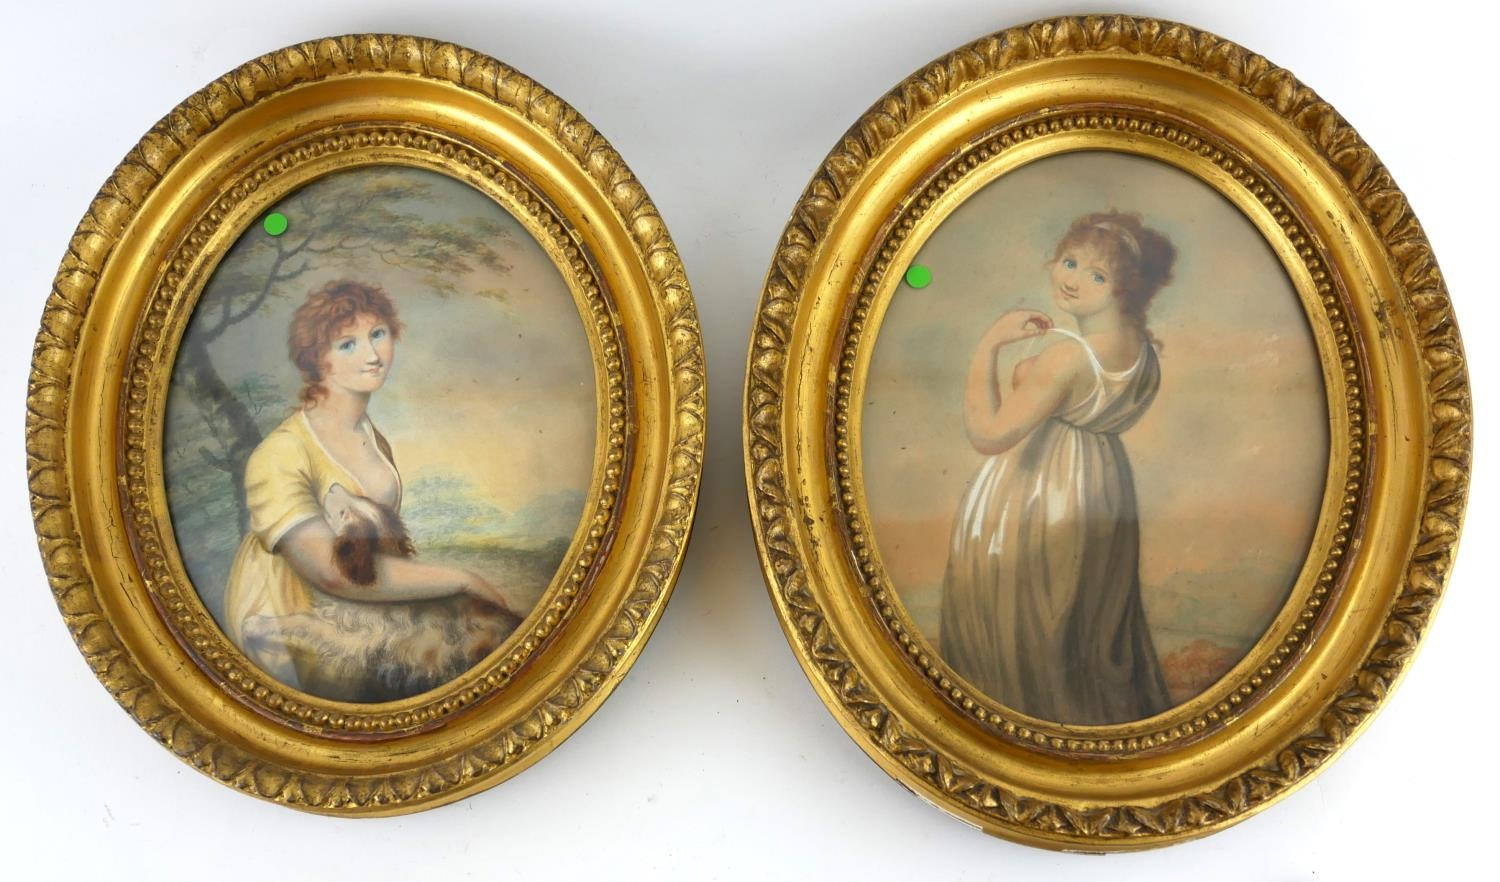 A PAIR OF EARLY 19TH CENTURY BRITISH SCHOOL OVAL WATERCOLOUR PORTRAIT MINIATURES Young lady in a